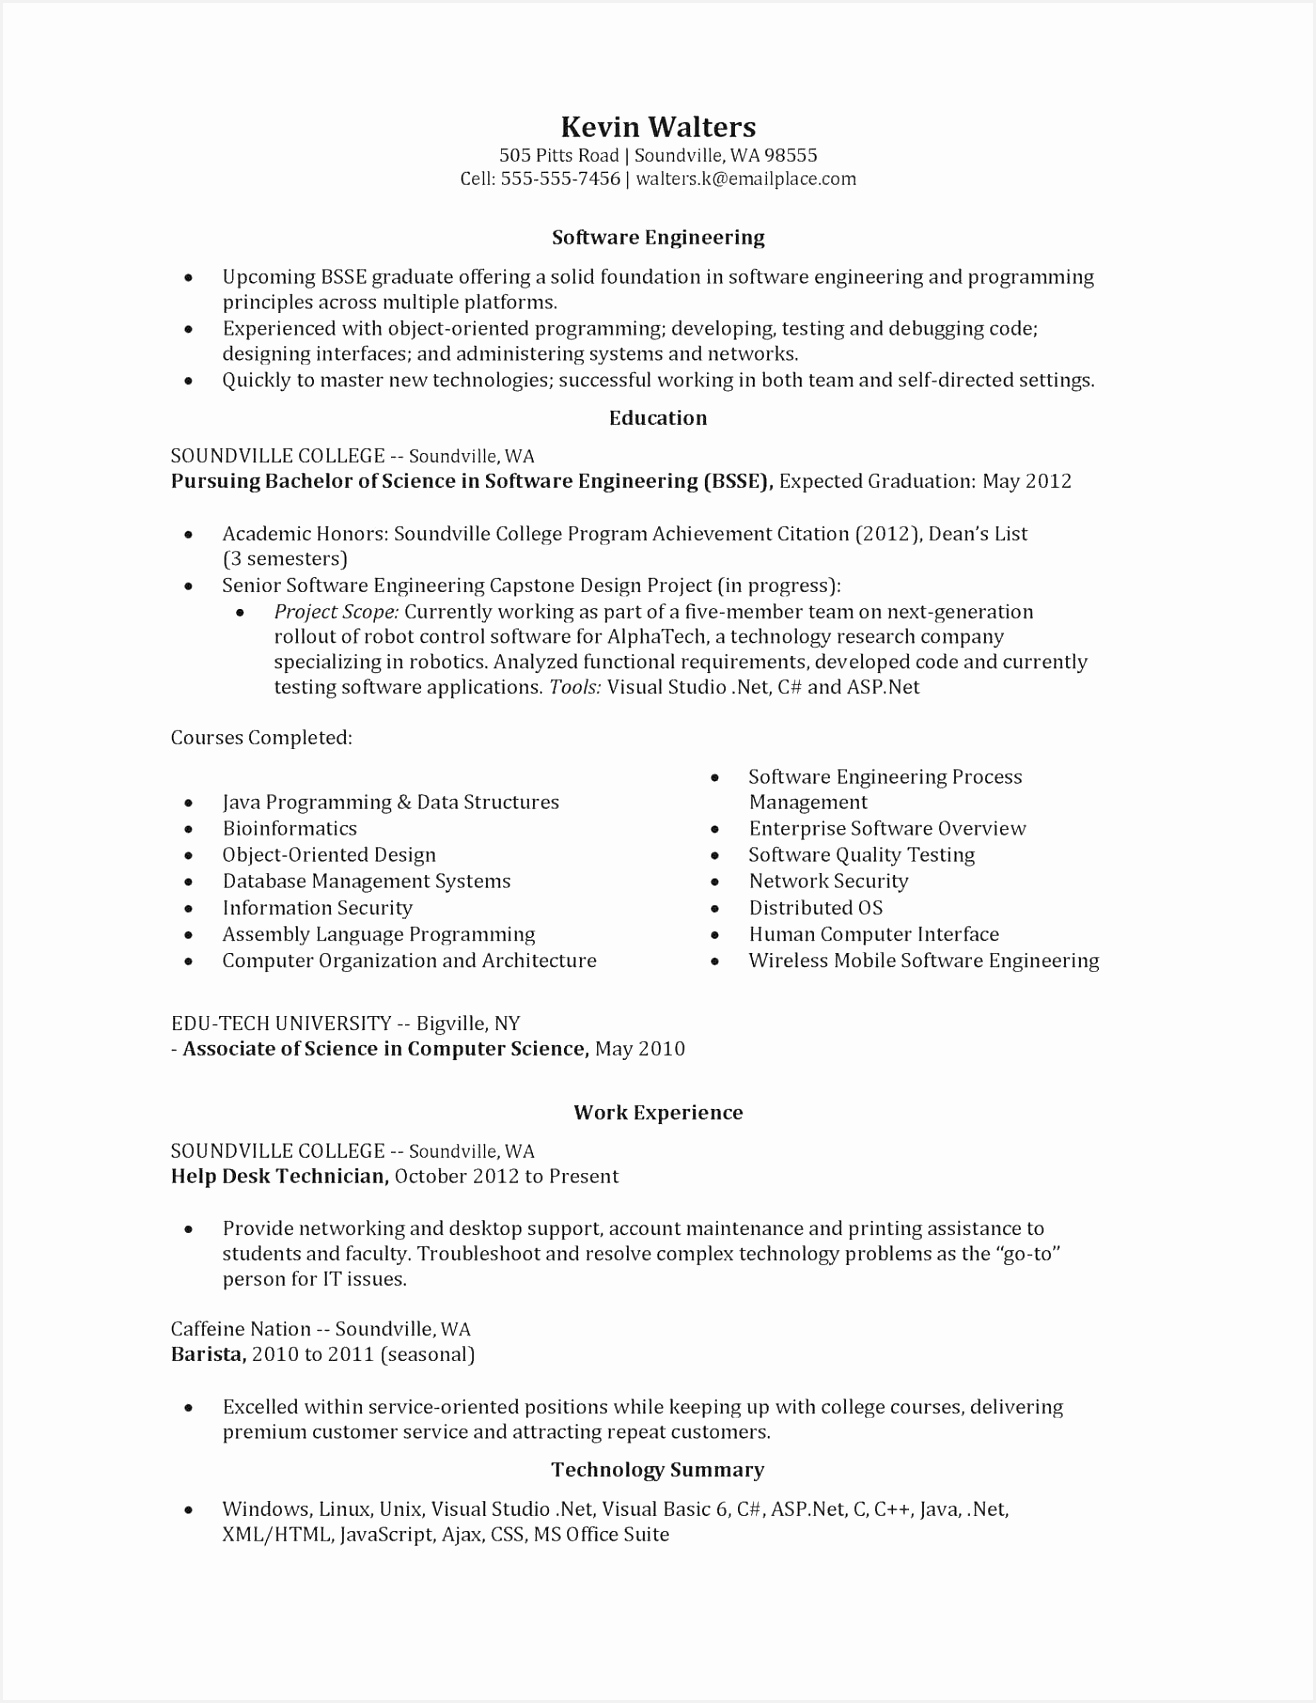 Resume Samples for Graduate School Qcsae Lovely Graduate School Resume Examples Unique Lpn Resume Sample New Line Of Resume Samples for Graduate School Wrhgg Elegant Sample Resume for Graduate School – Sample Resume for Graduate